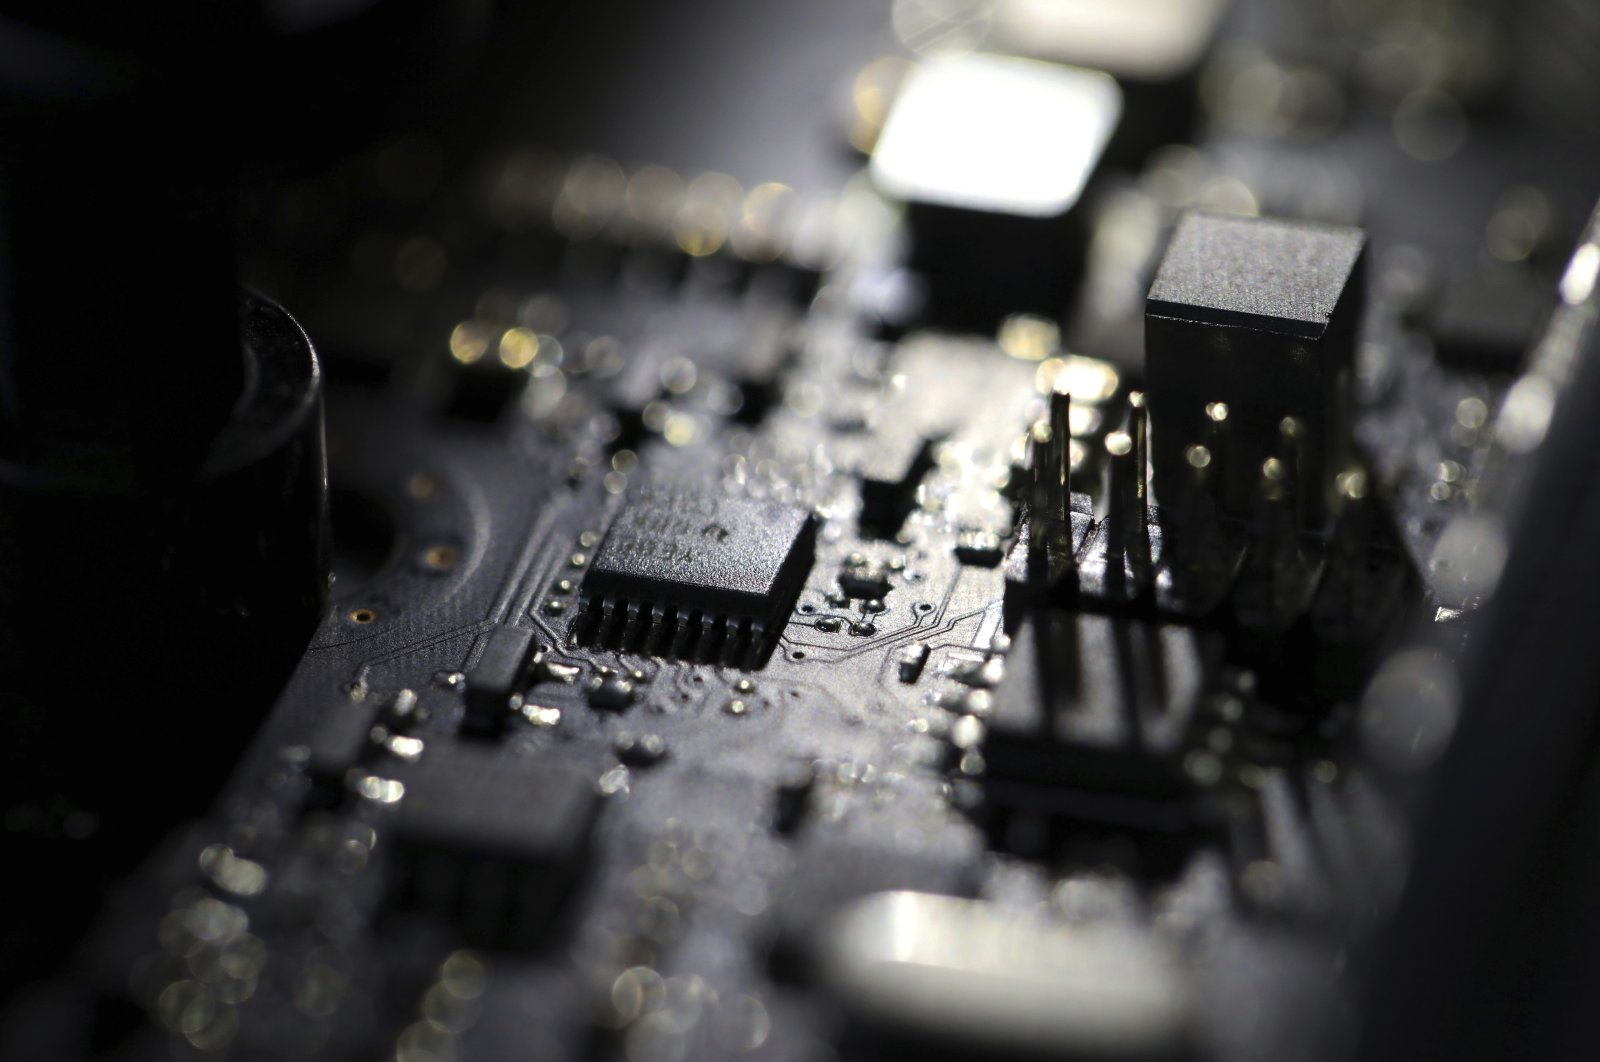 The inside of a computer seen in Jersey City, N.J., Feb 23, 2019. (AP Photo)